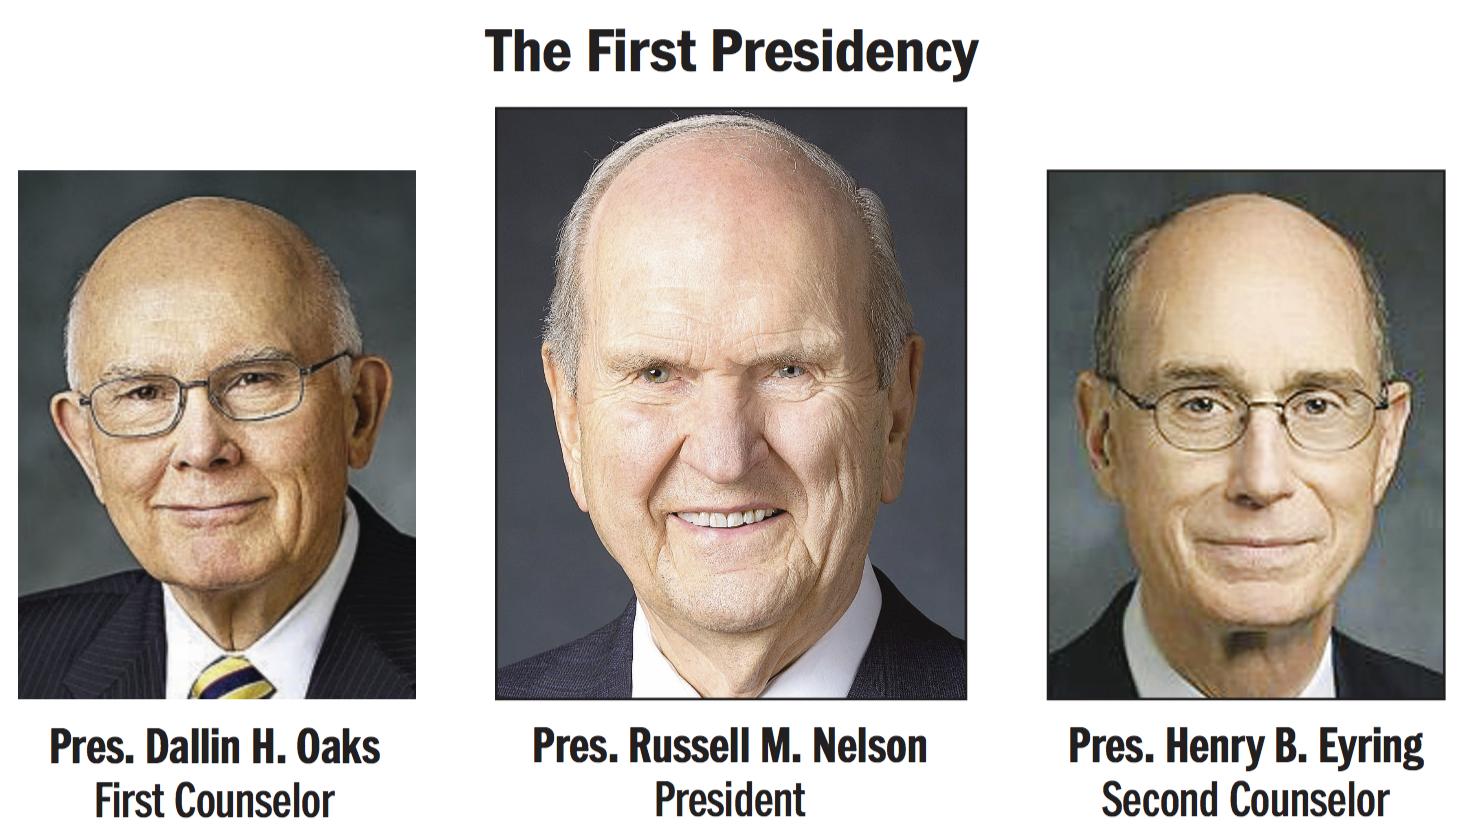 The First Presidency of the Church, President Russell M. Nelson, President Dallin H. Oaks and President Henry B. Eyring.